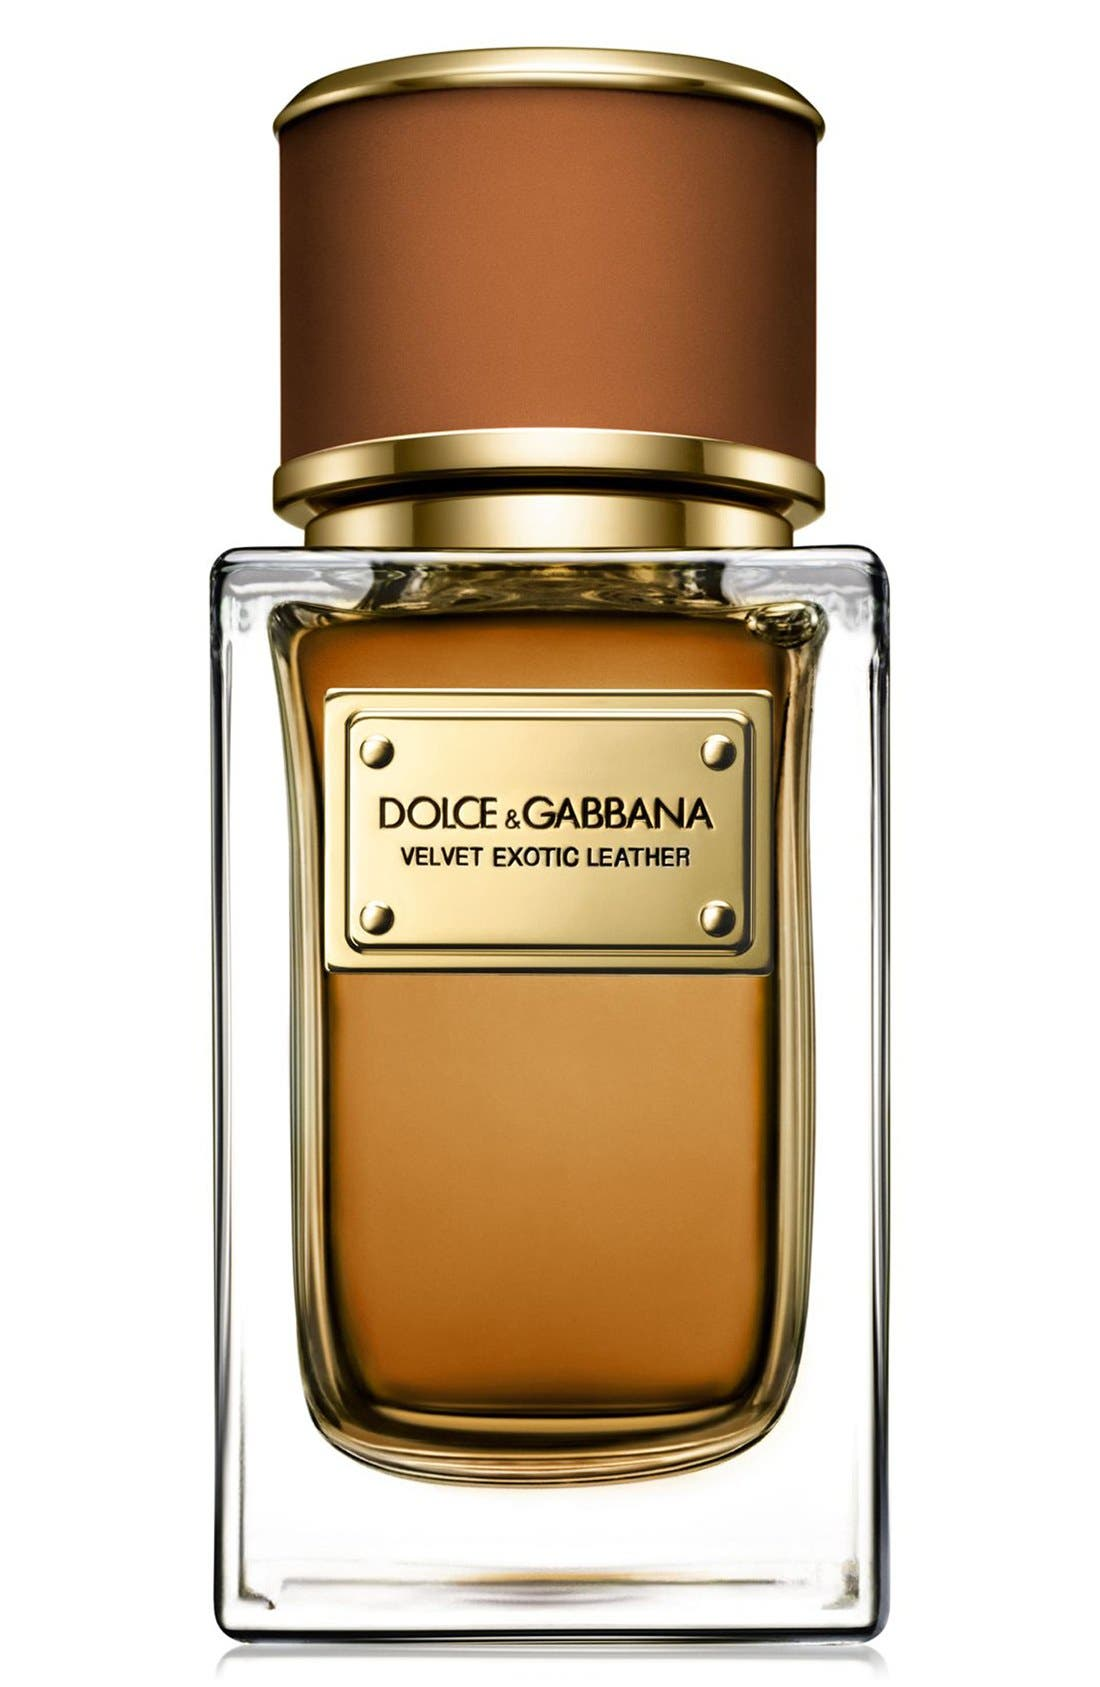 Dolce&Gabbana Beauty 'Velvet Exotic Leather' Eau de Parfum